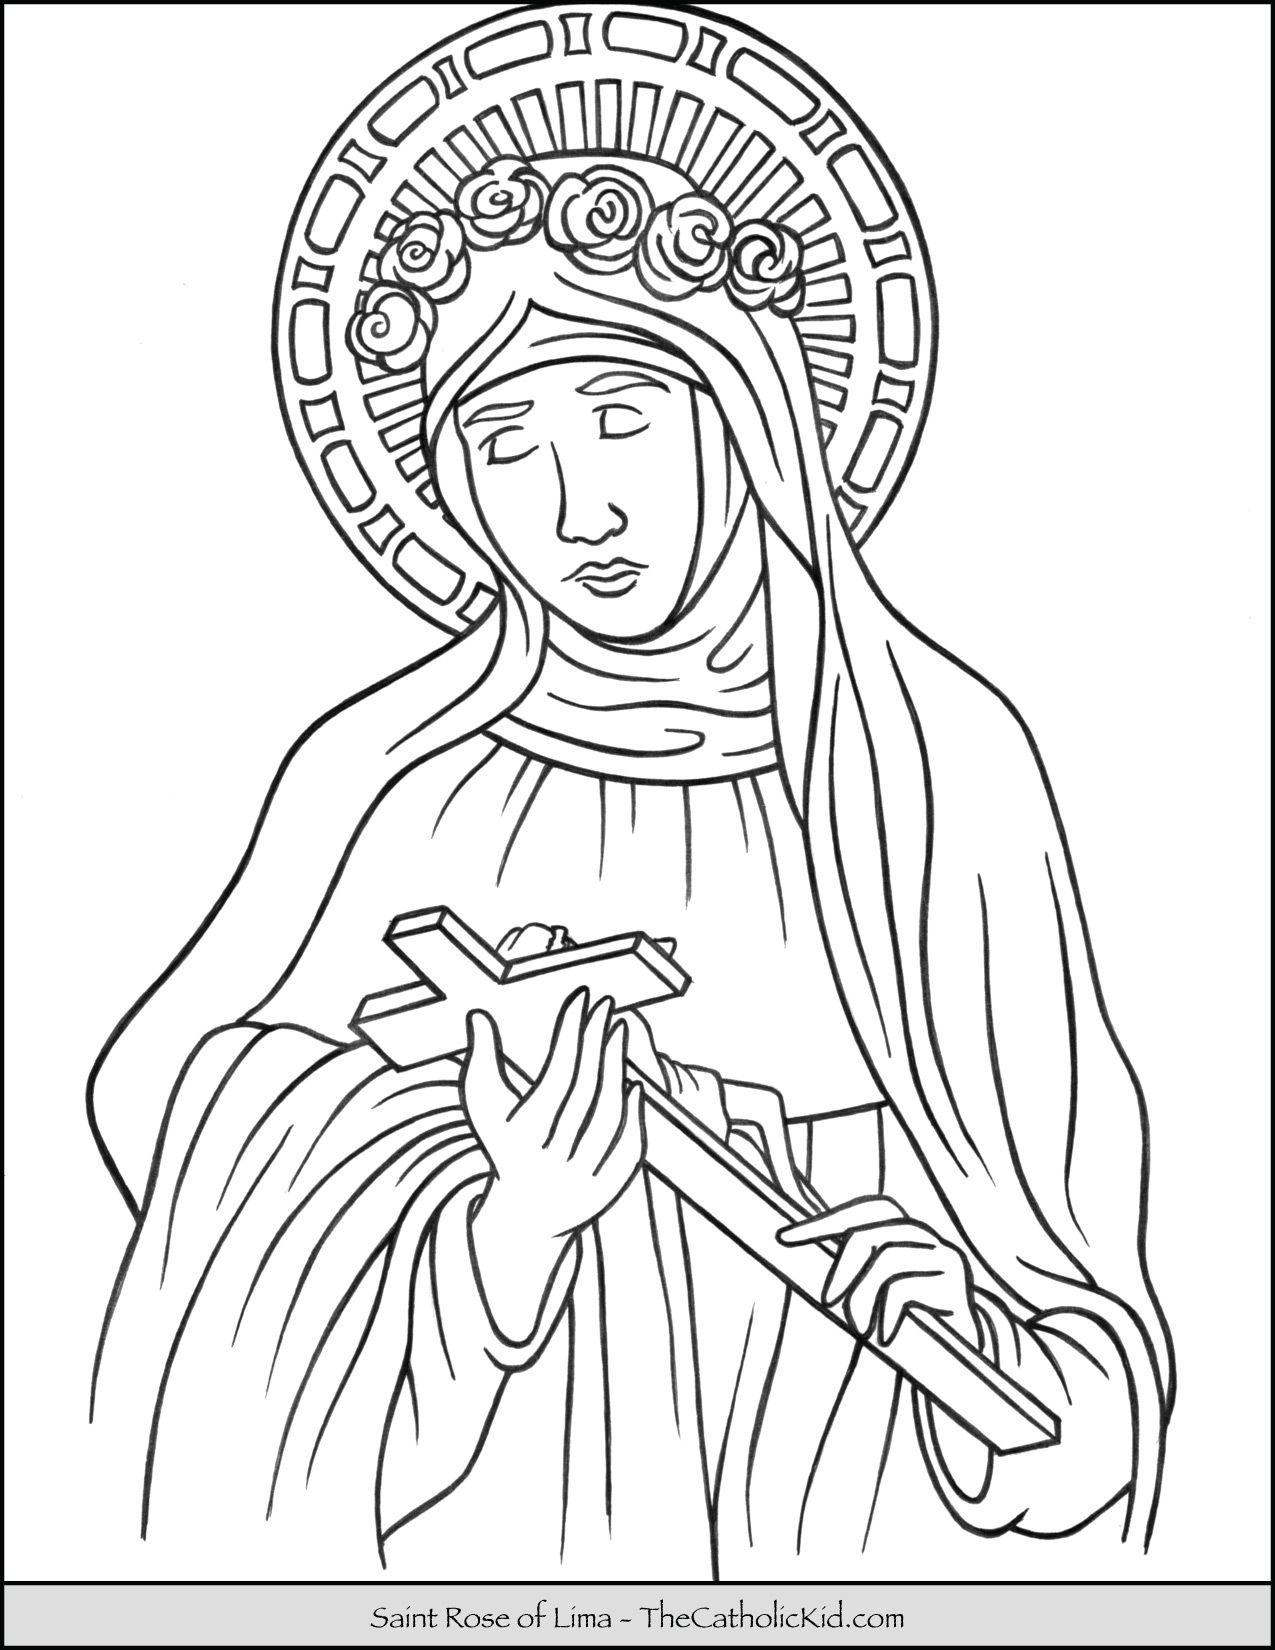 Saint Rose Of Lima Coloring Page Thecatholickid Com With Images